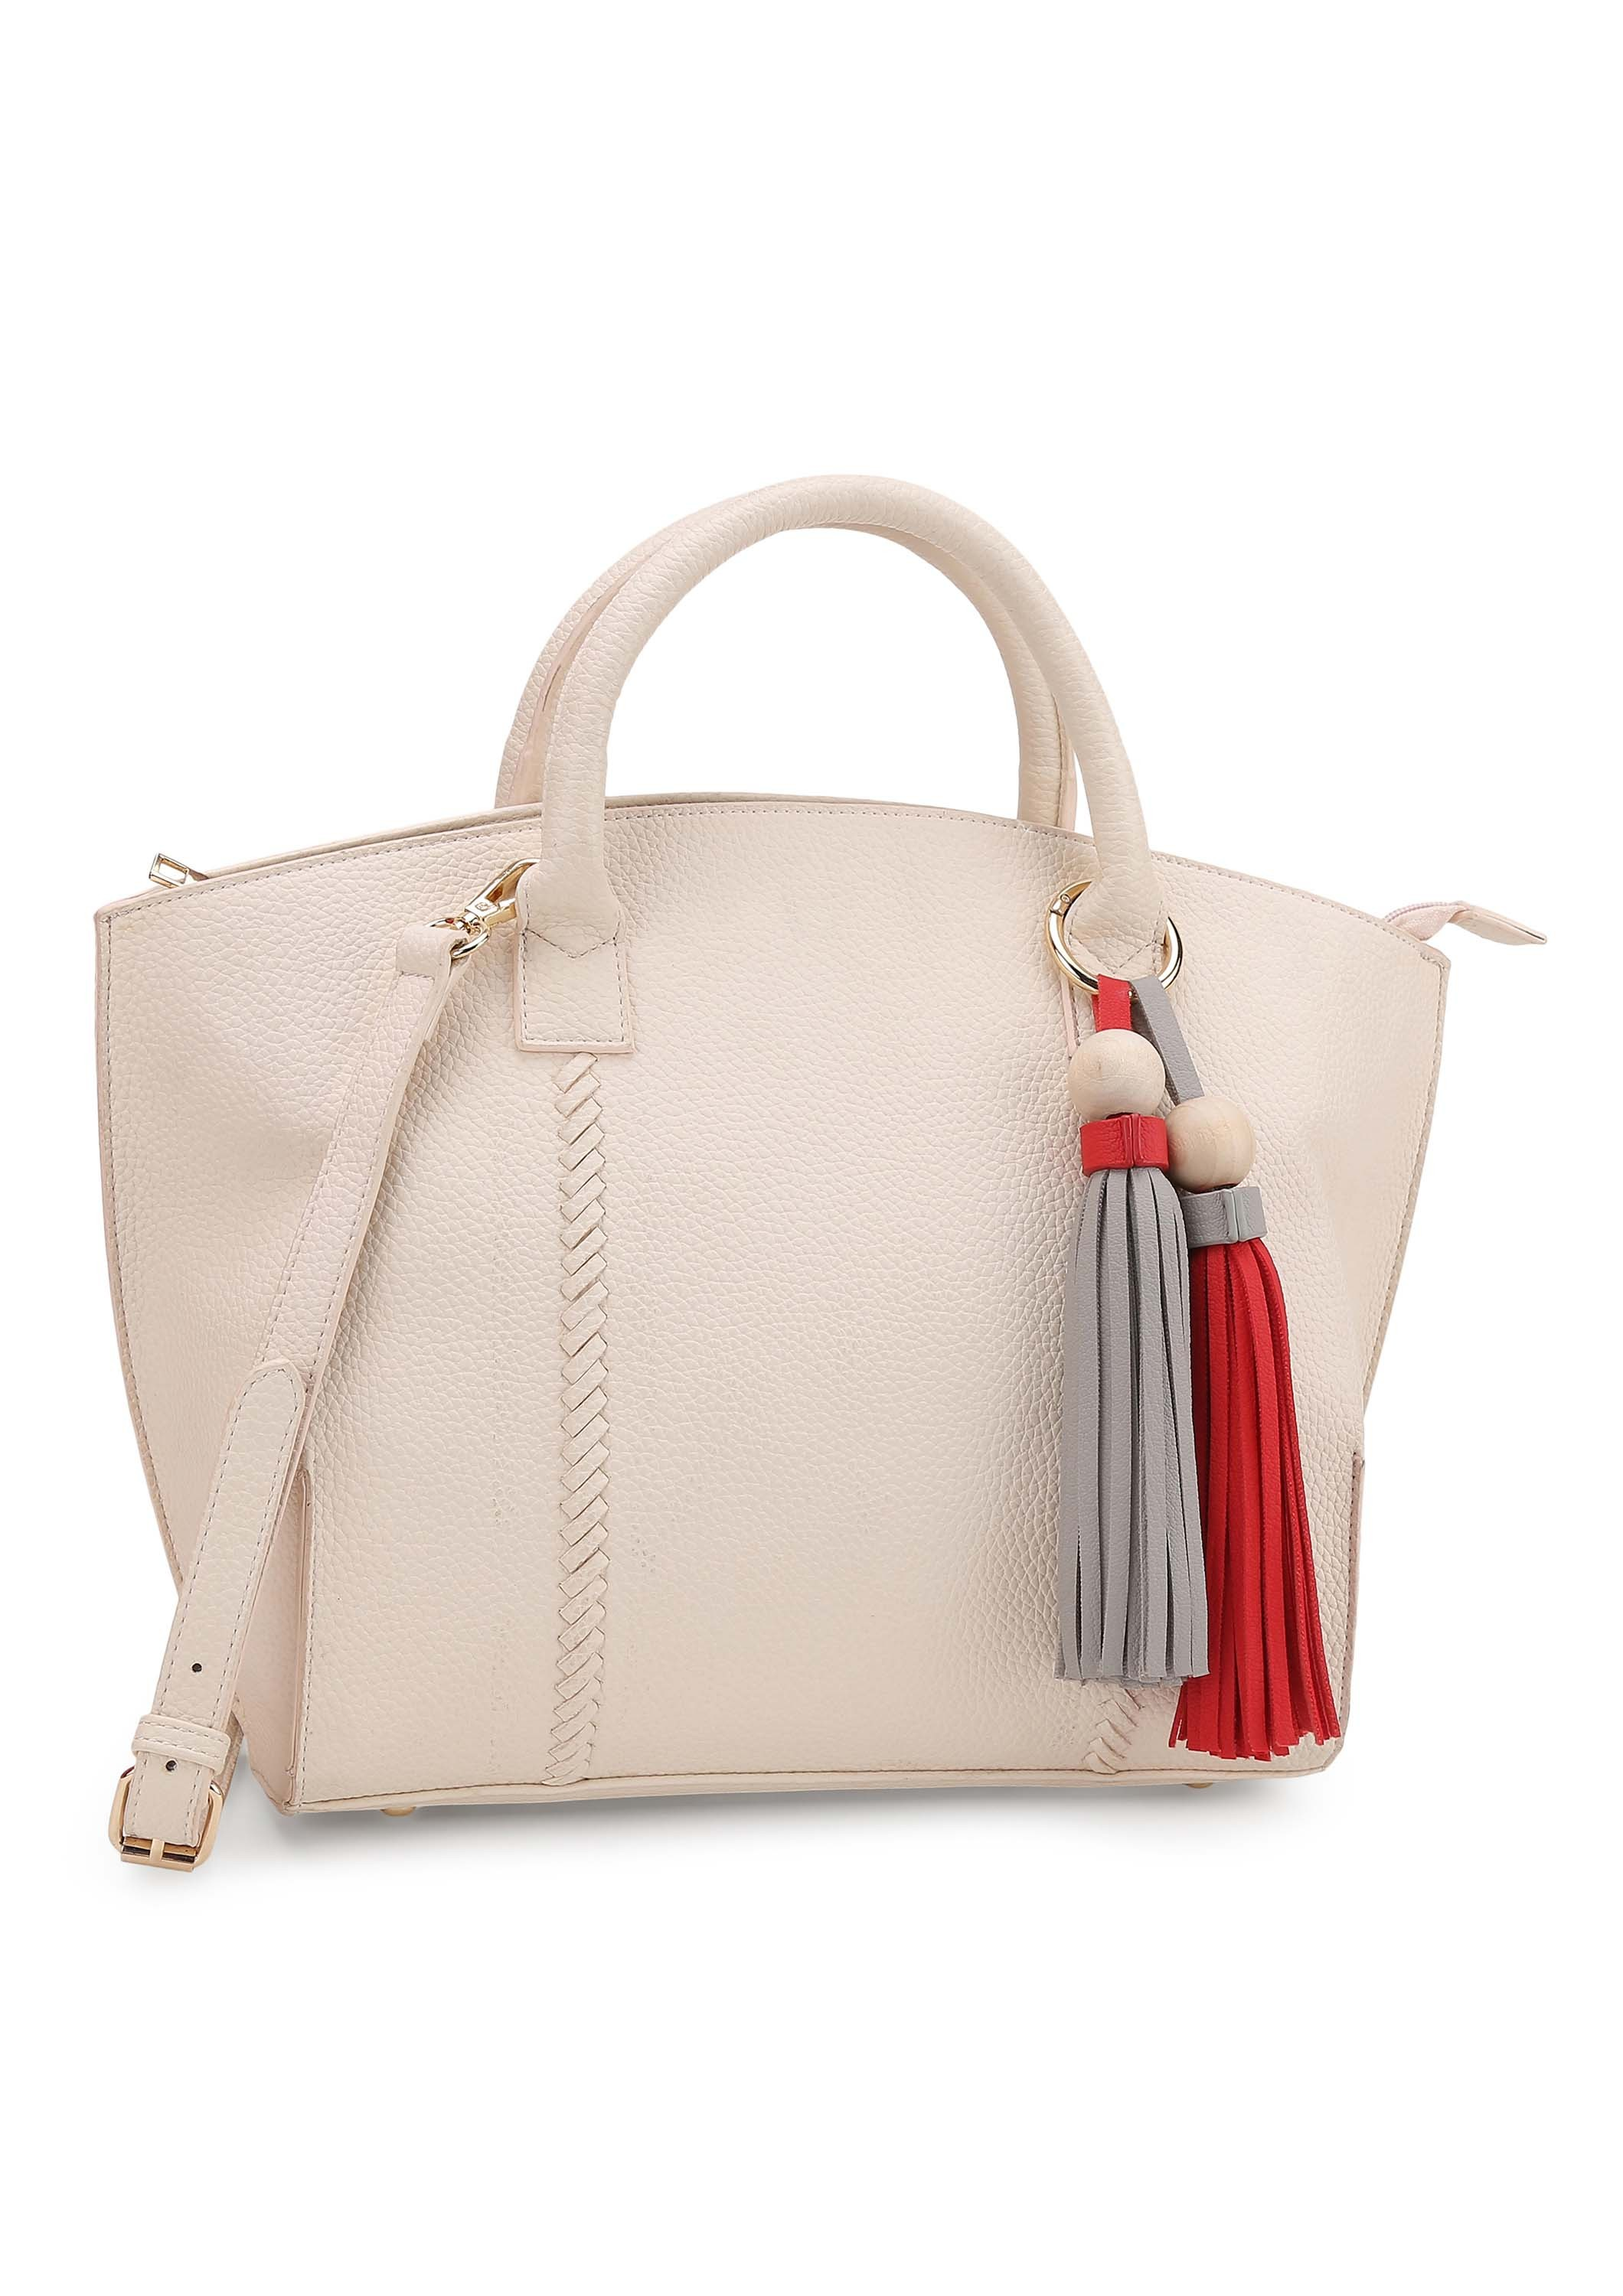 White Tote Bag with Red & Grey Tassles